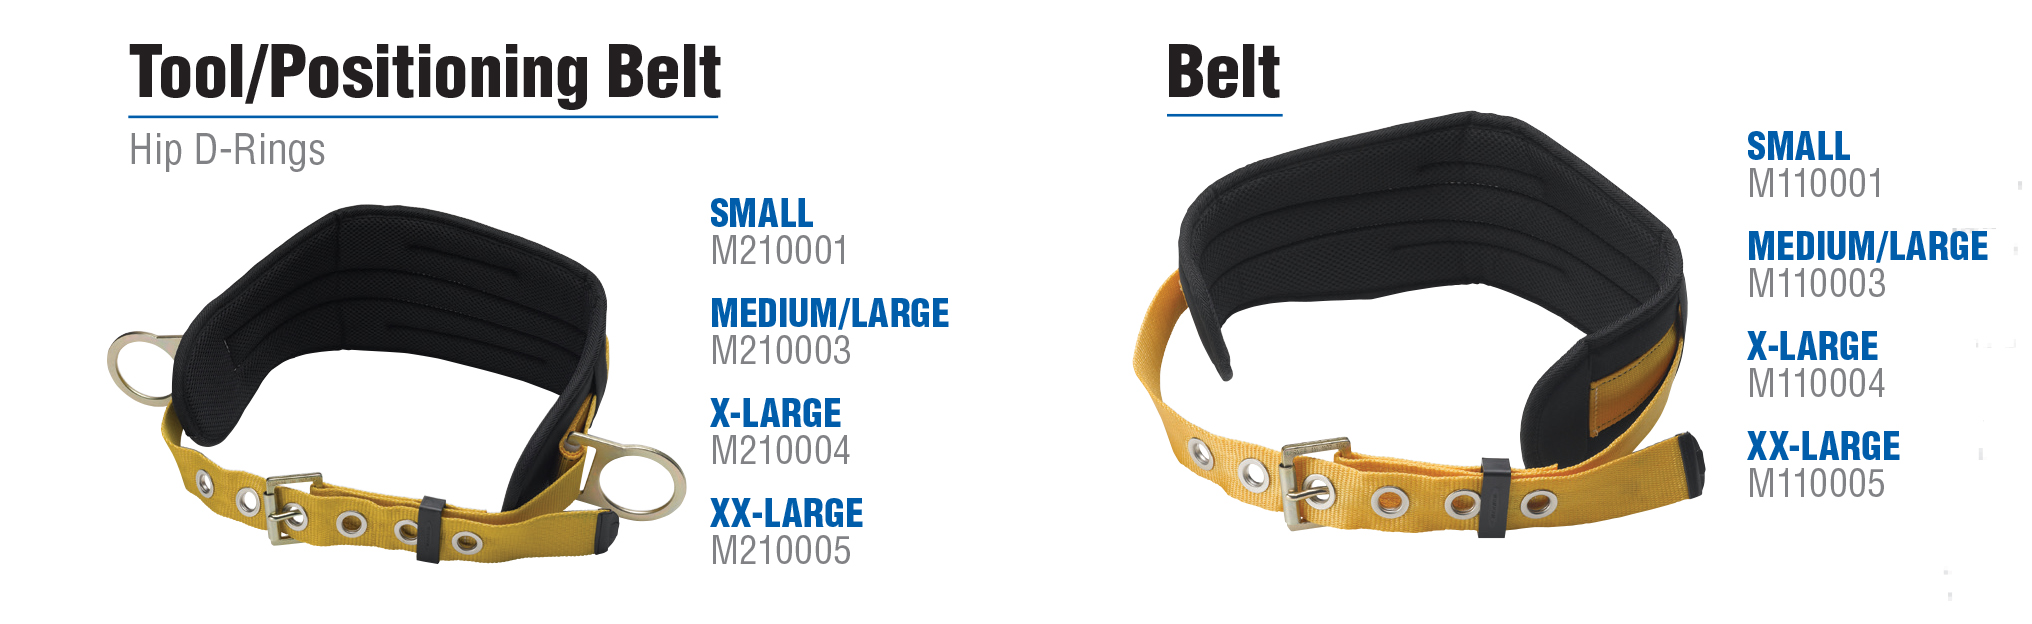 belts-fp-harness.jpg